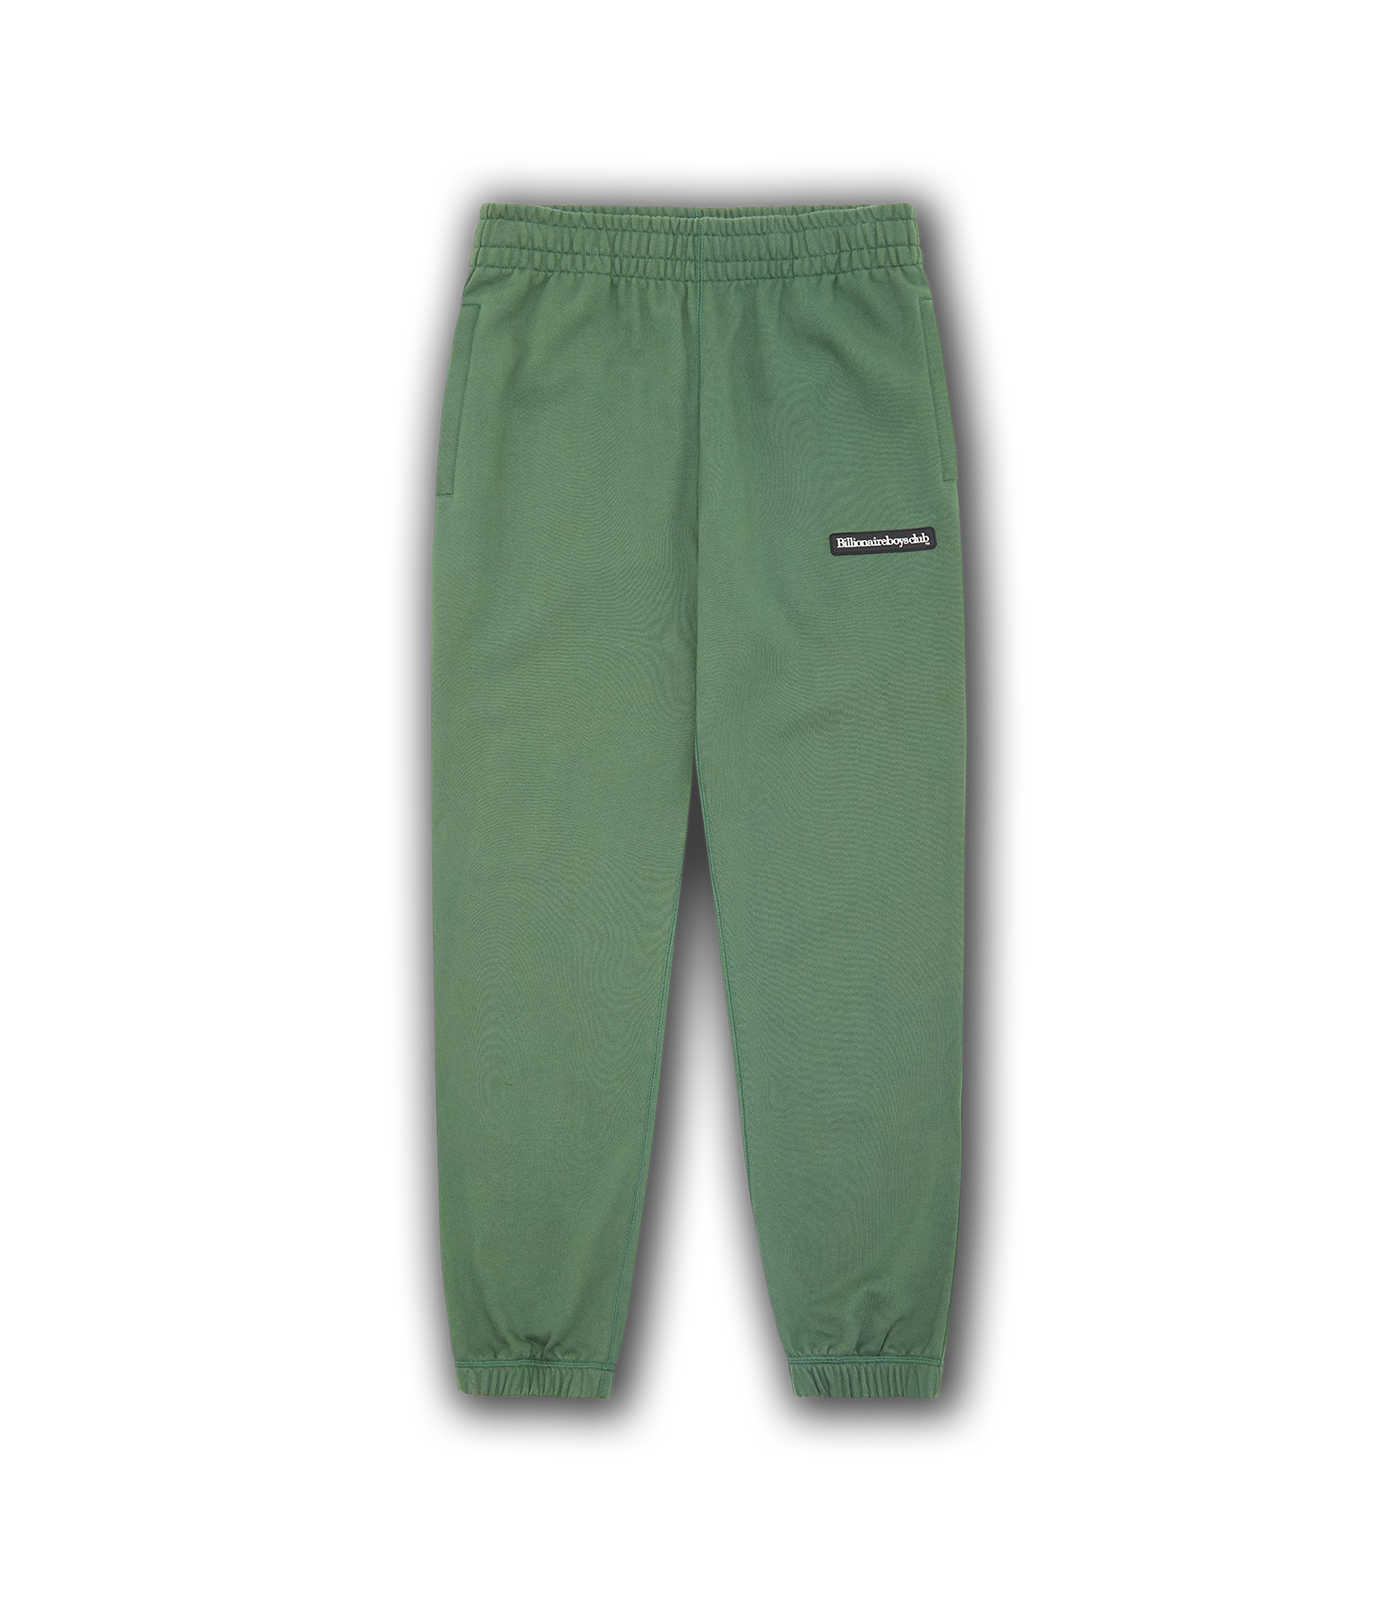 RUBBER PATCH SWEATPANTS - OLIVE